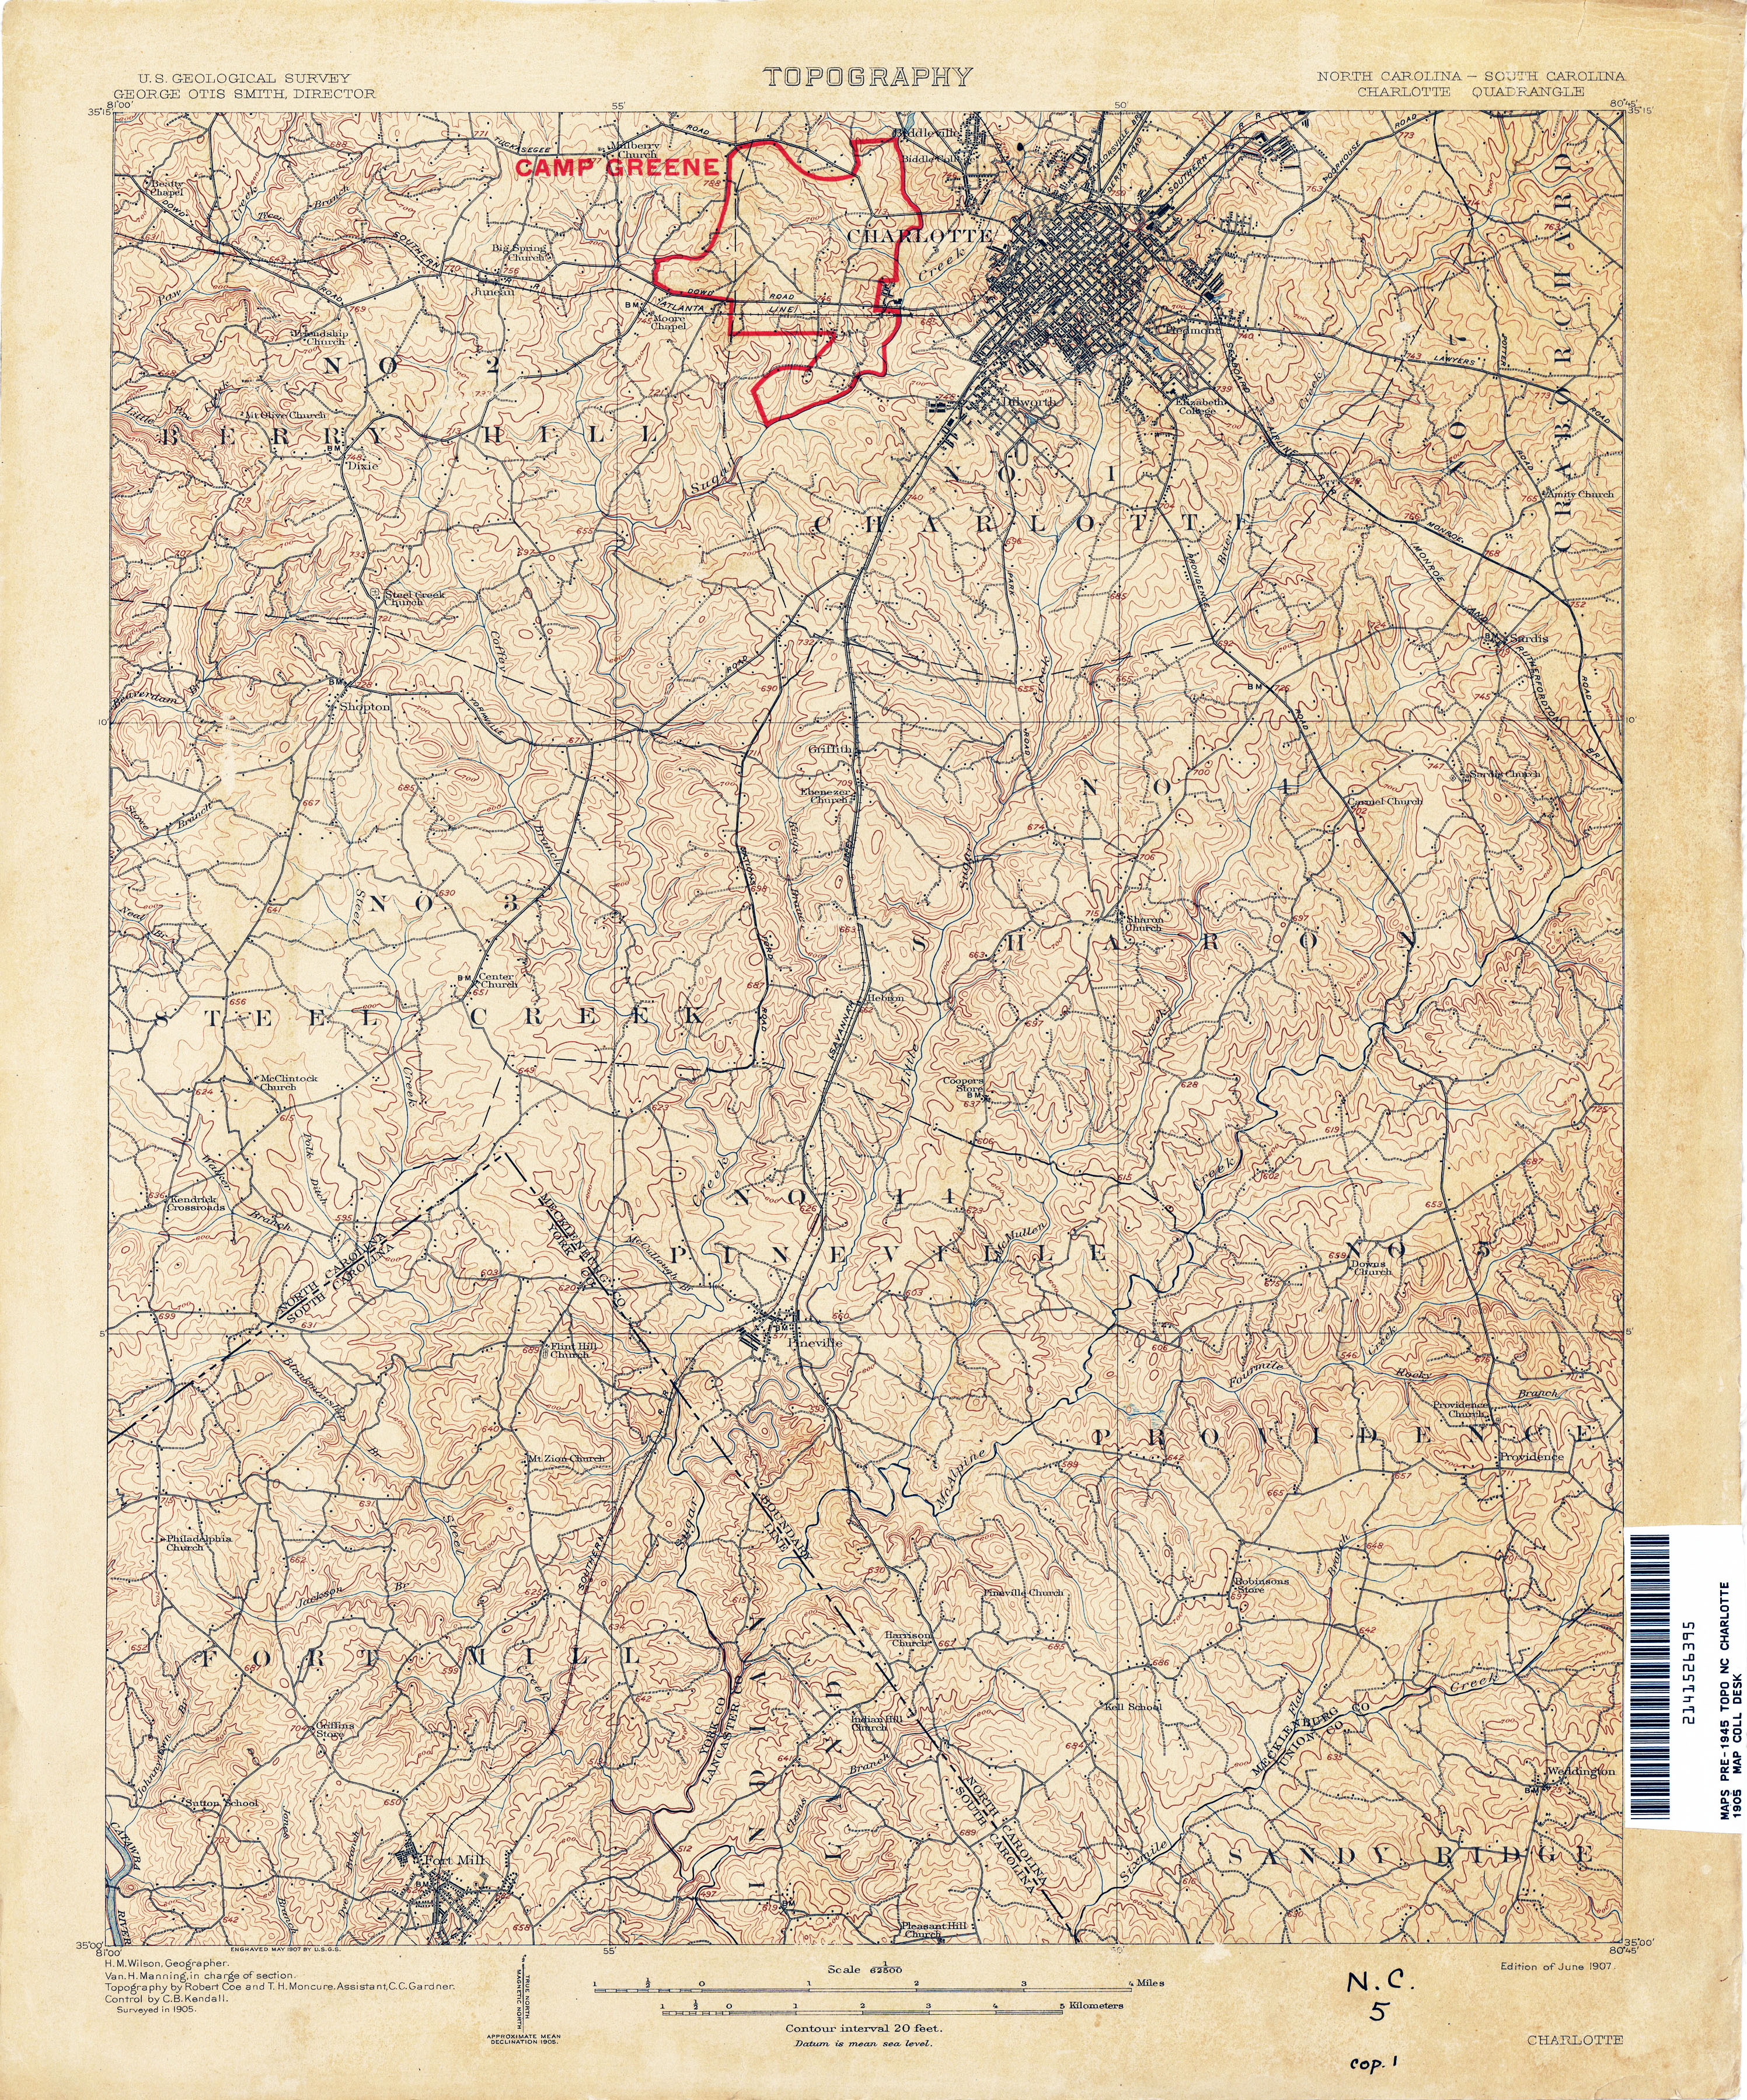 North Carolina Historical Topographic Maps - Perry-Castañeda ... on map of memphis tn, map of orange co nc, map of asheville nc, map of ferguson nc, map of north carolina, map of biltmore forest nc, map of ogden nc, map of atlanta, map of hog island nc, map of raleigh nc, map of moyock nc, map of charlottesville nc, map of saxapahaw nc, map of clarksville nc, map of salemburg nc, map of greenville nc, map of bunnlevel nc, map of columbus ga, map of charlotte nc, map of griffin nc,